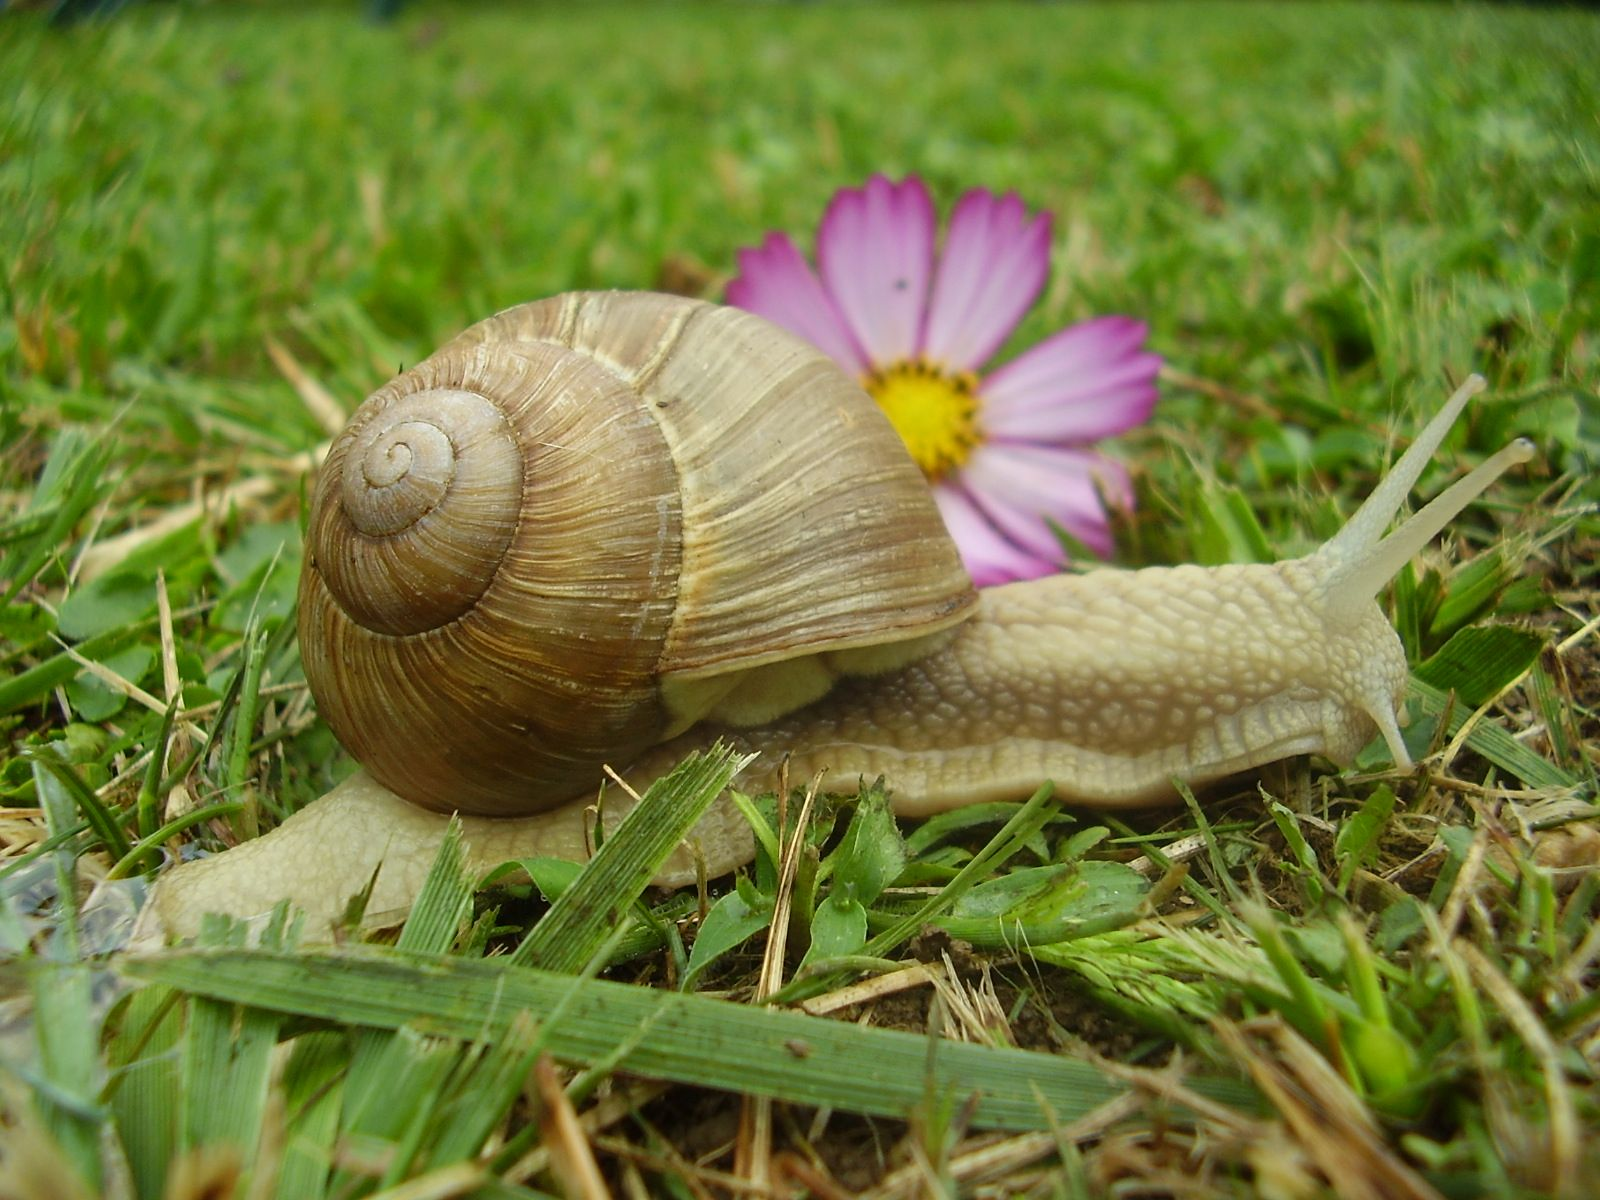 May 24 National Escargot Day I don't have a recipe but